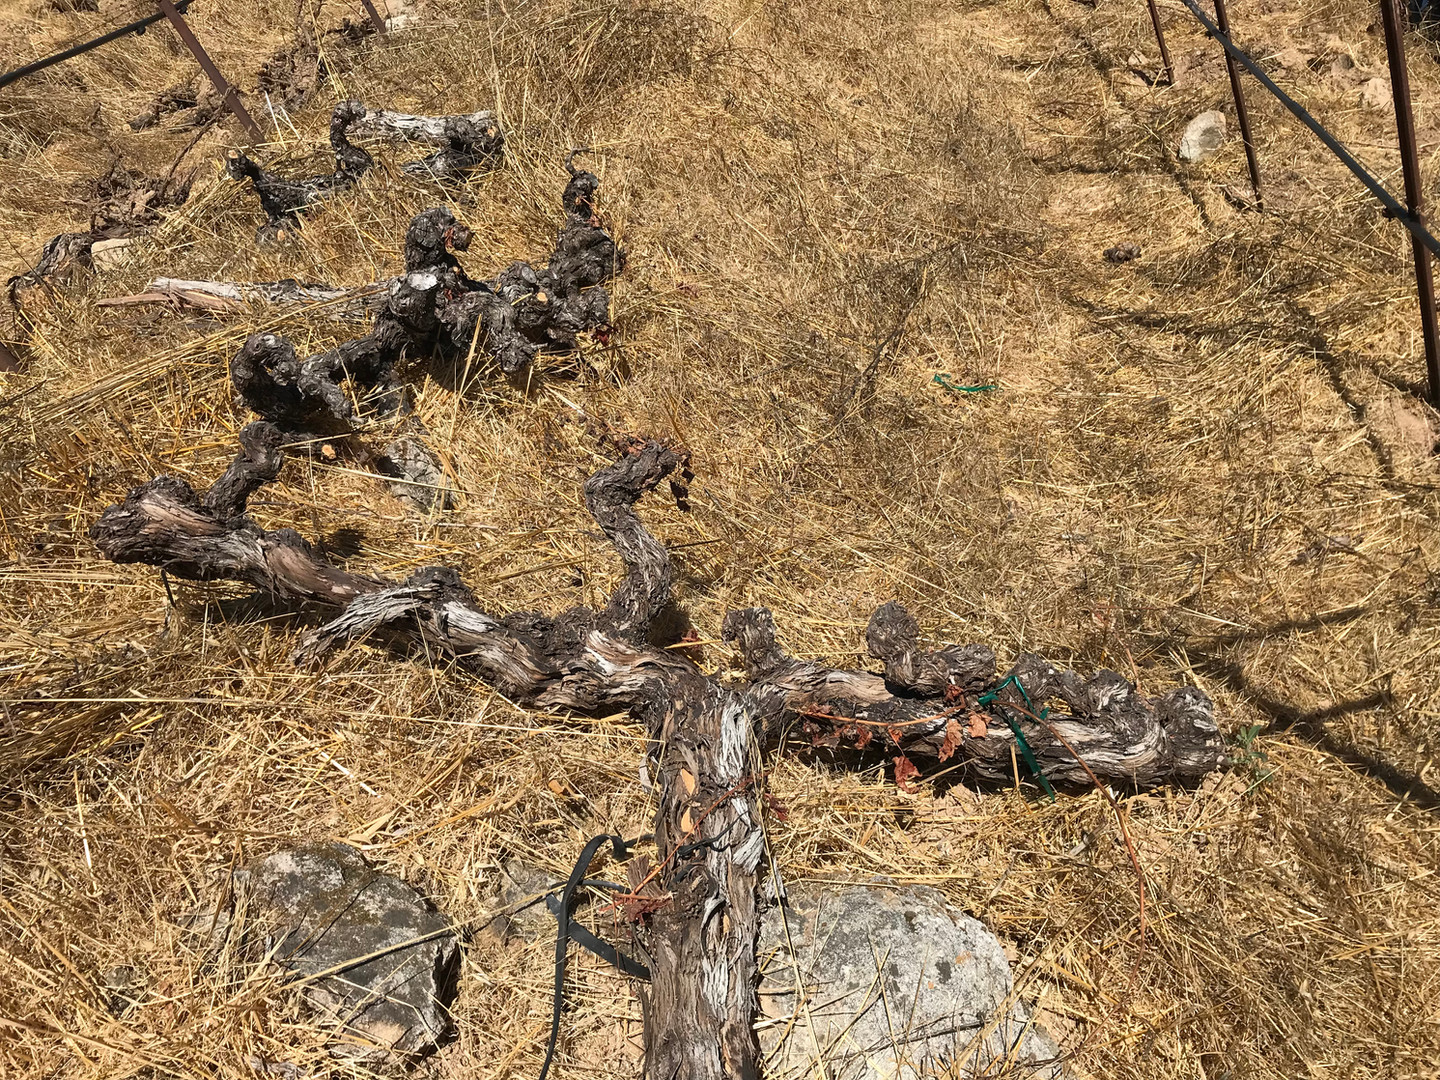 Burnt Vines lay on the ground